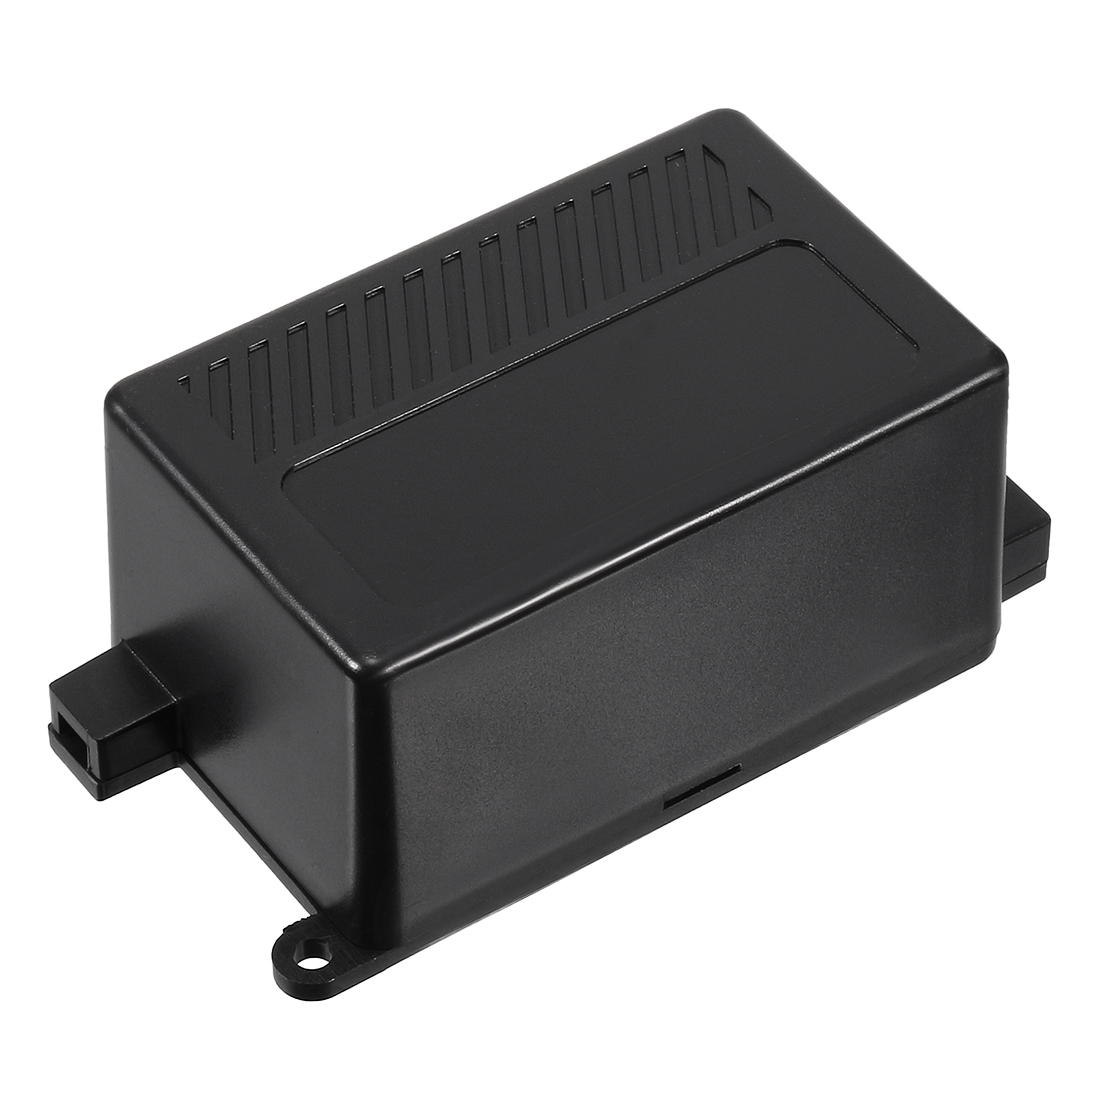 Black Plastic Dustproof IP65 Power Protector Cable Connect Junction Box Enclosure Case 70mmx46mmx36mm